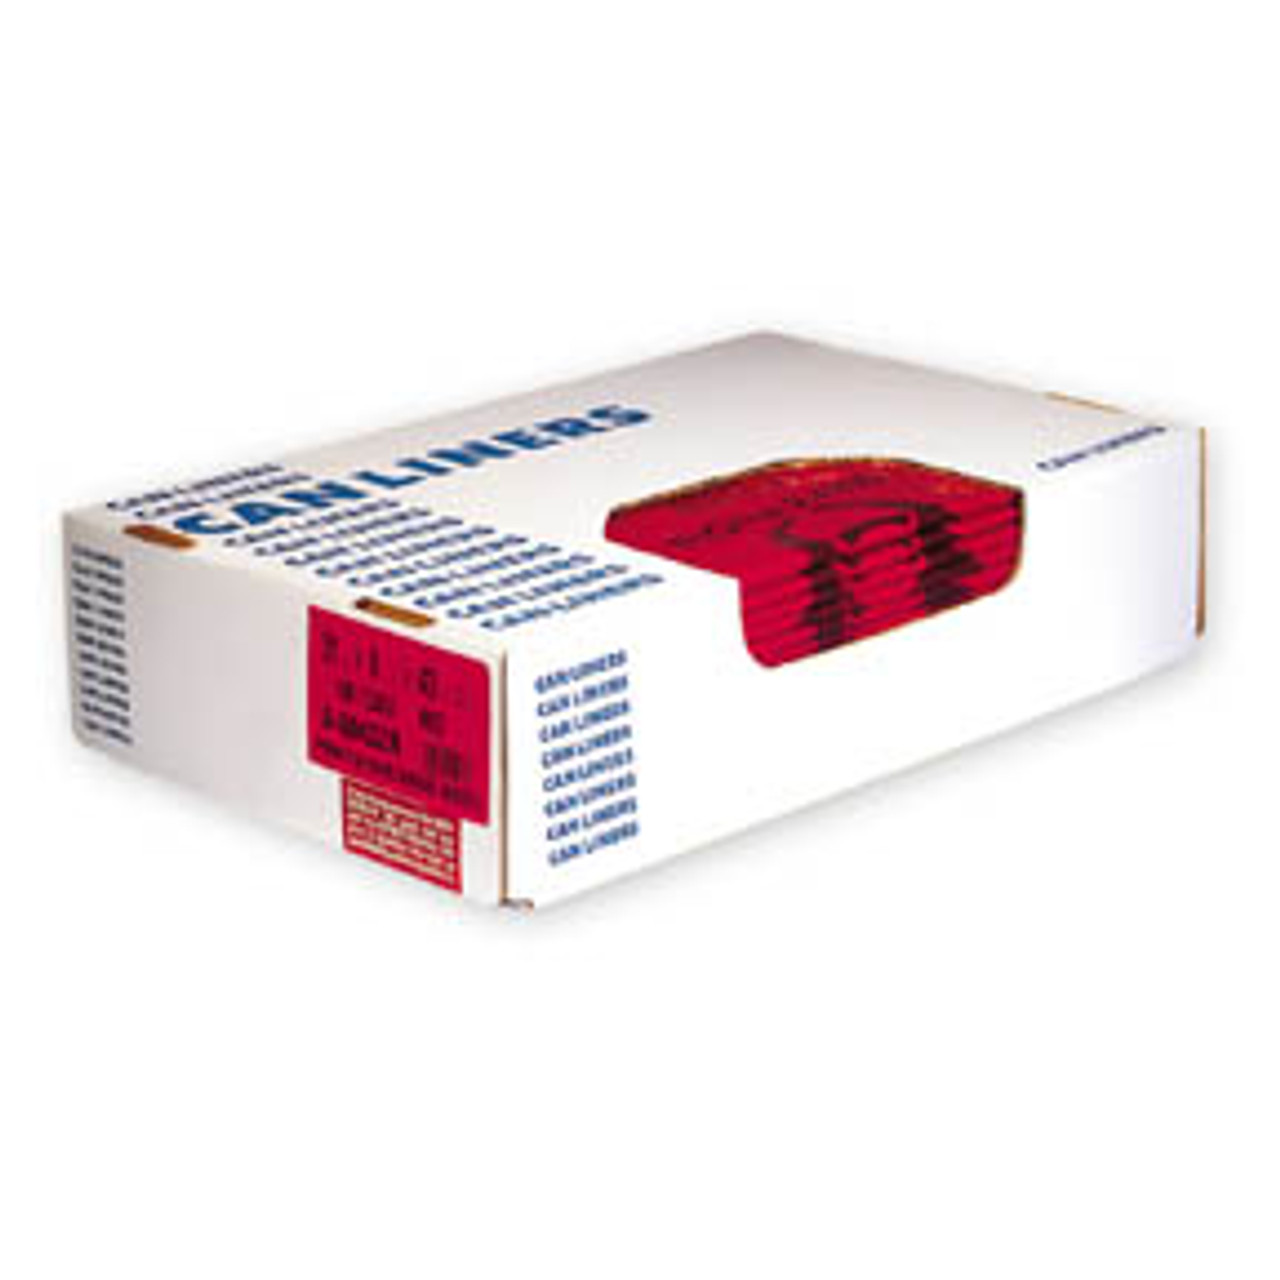 Red Sanitation Toilet Liners -12 Bags